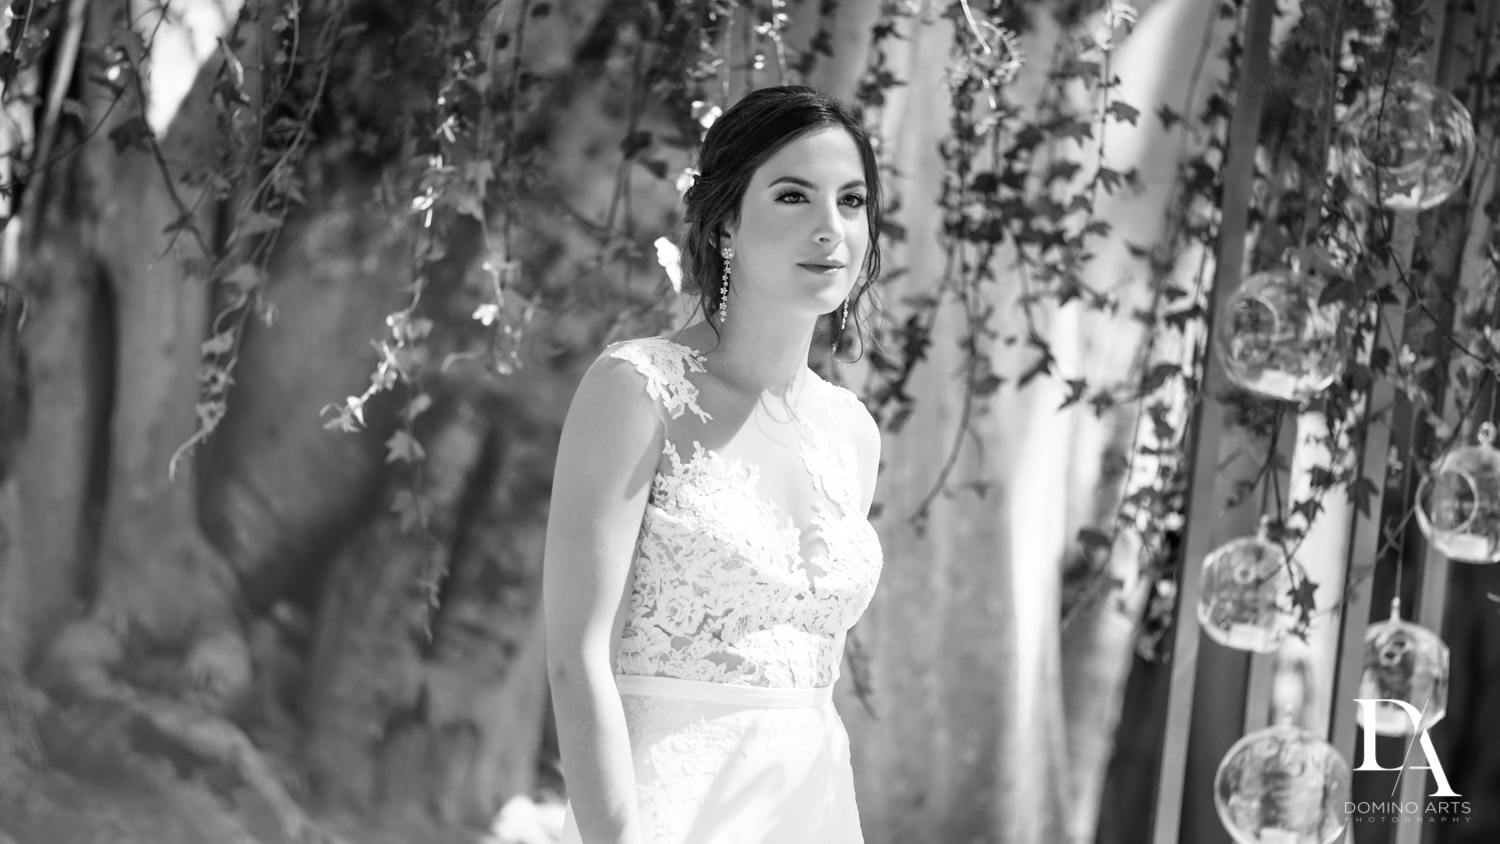 B&W pictures at Tropical Garden Wedding at Fisher Island Miami by Domino Arts Photography